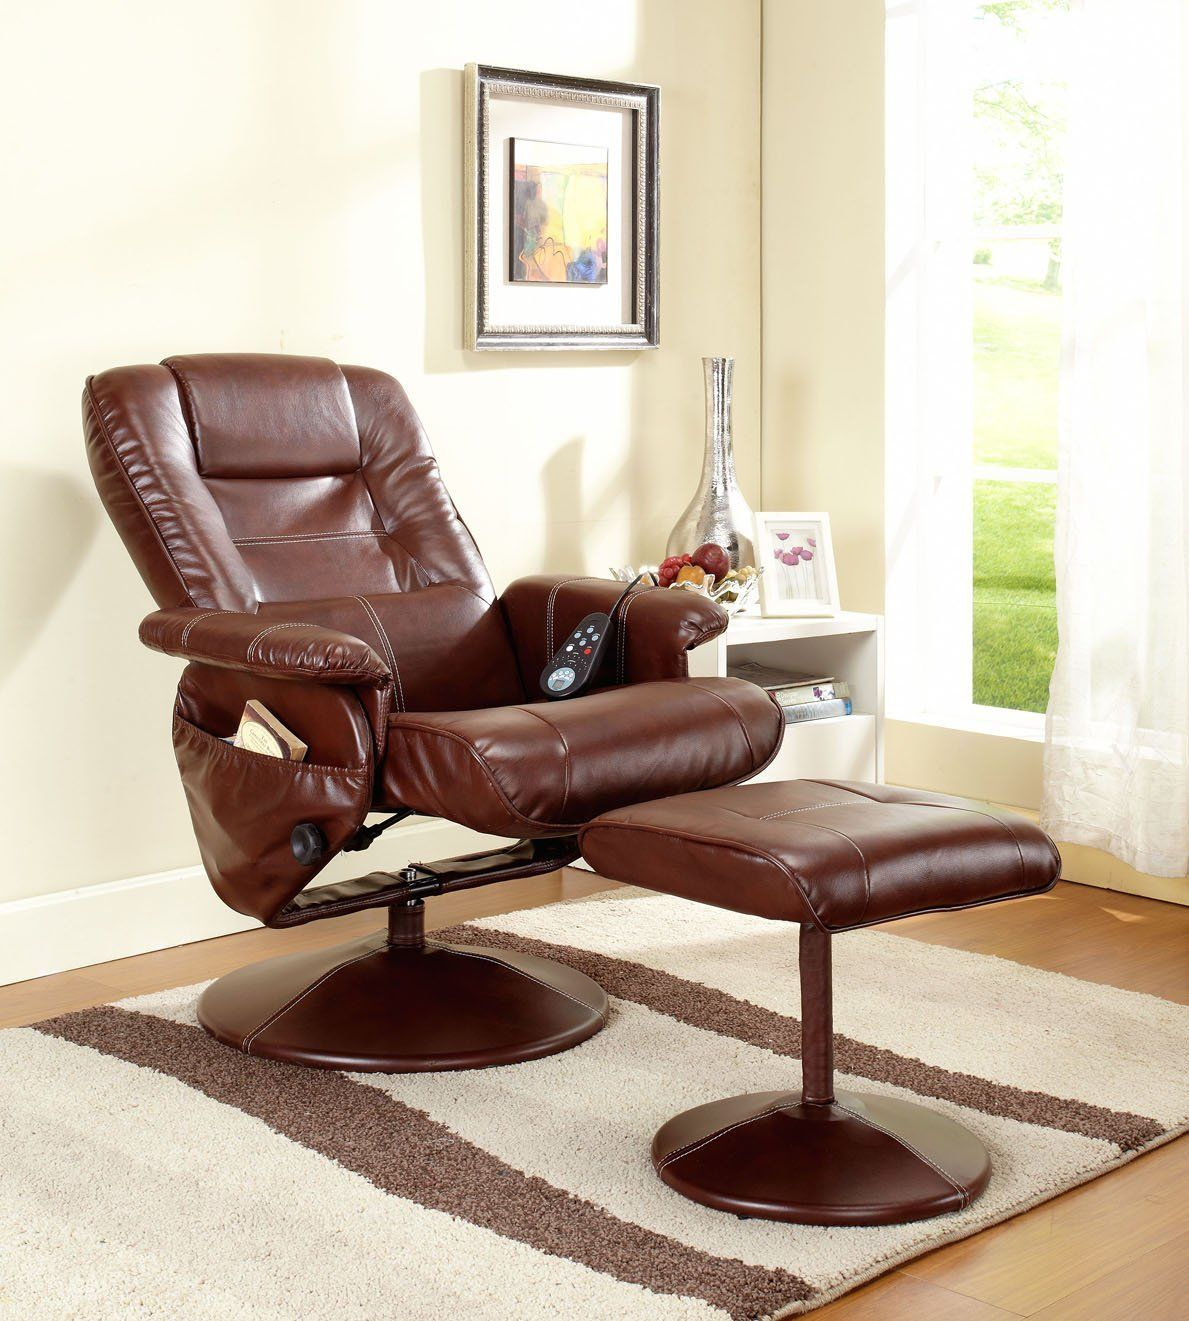 Kings brand massage leather recliner swivel chairs